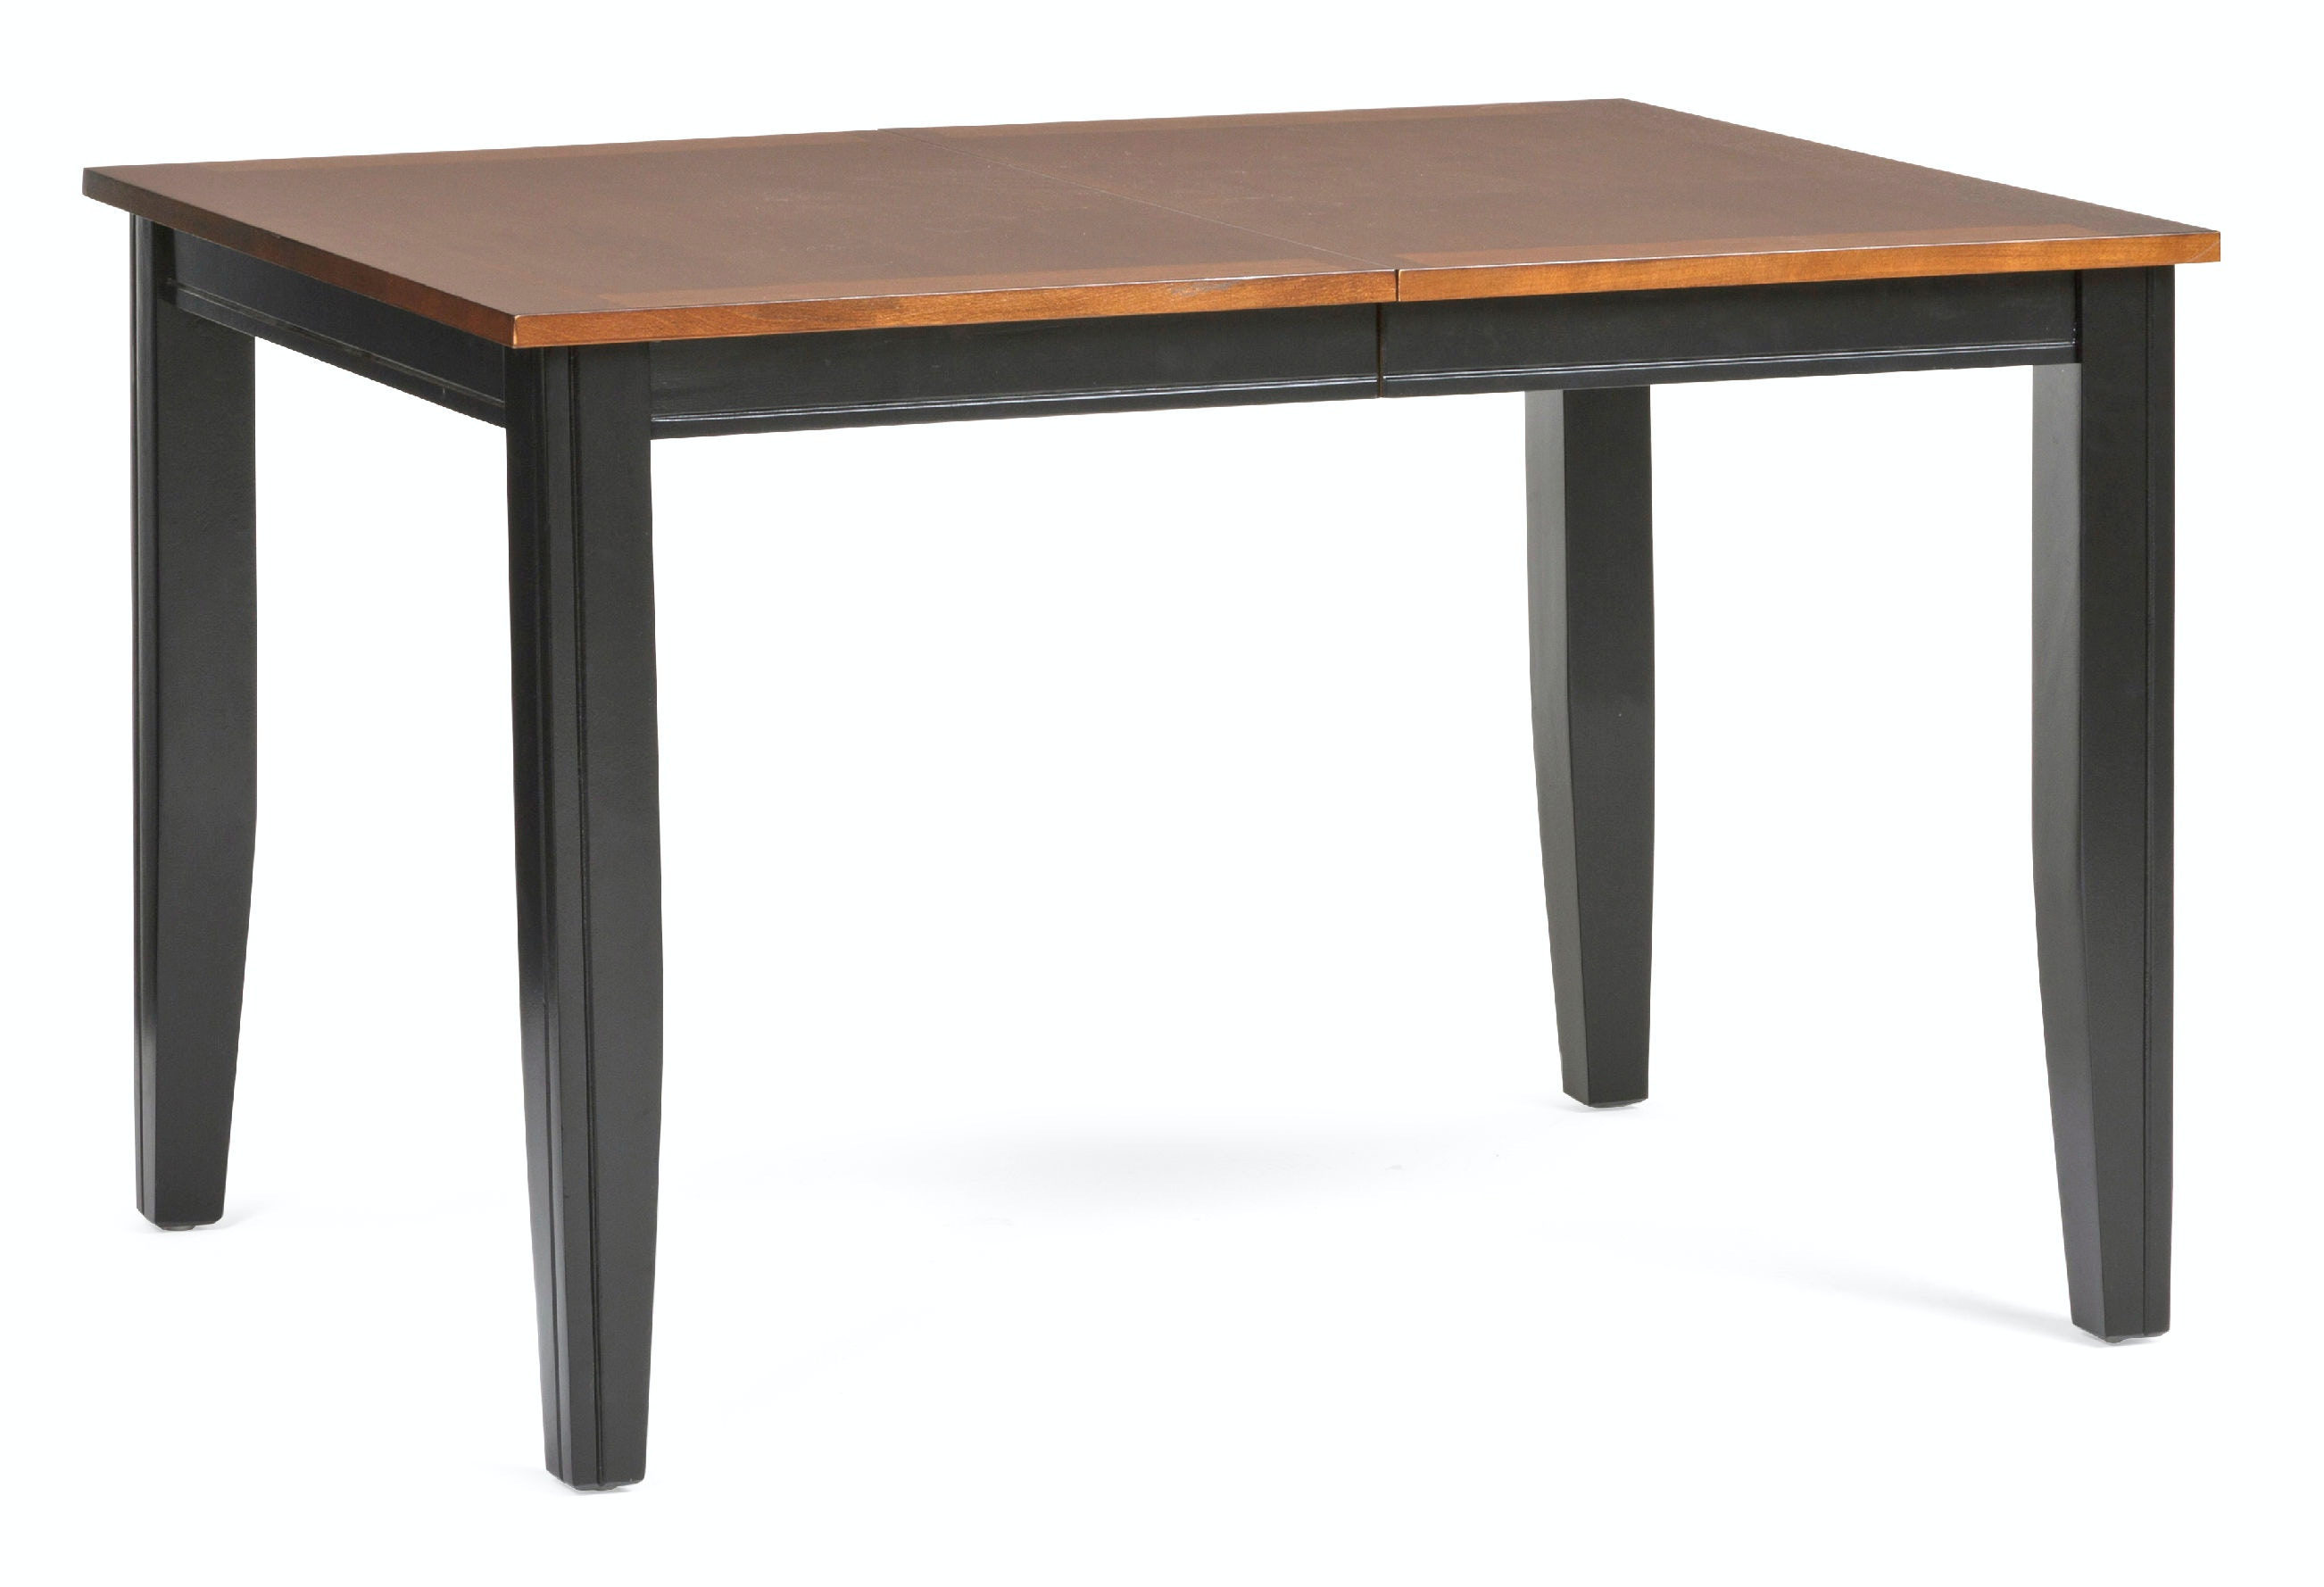 Dining Room Madera 42 Round Dining Table Espresso Finish : 438042a from www.starfurniture.com size 768 x 576 jpeg 16kB